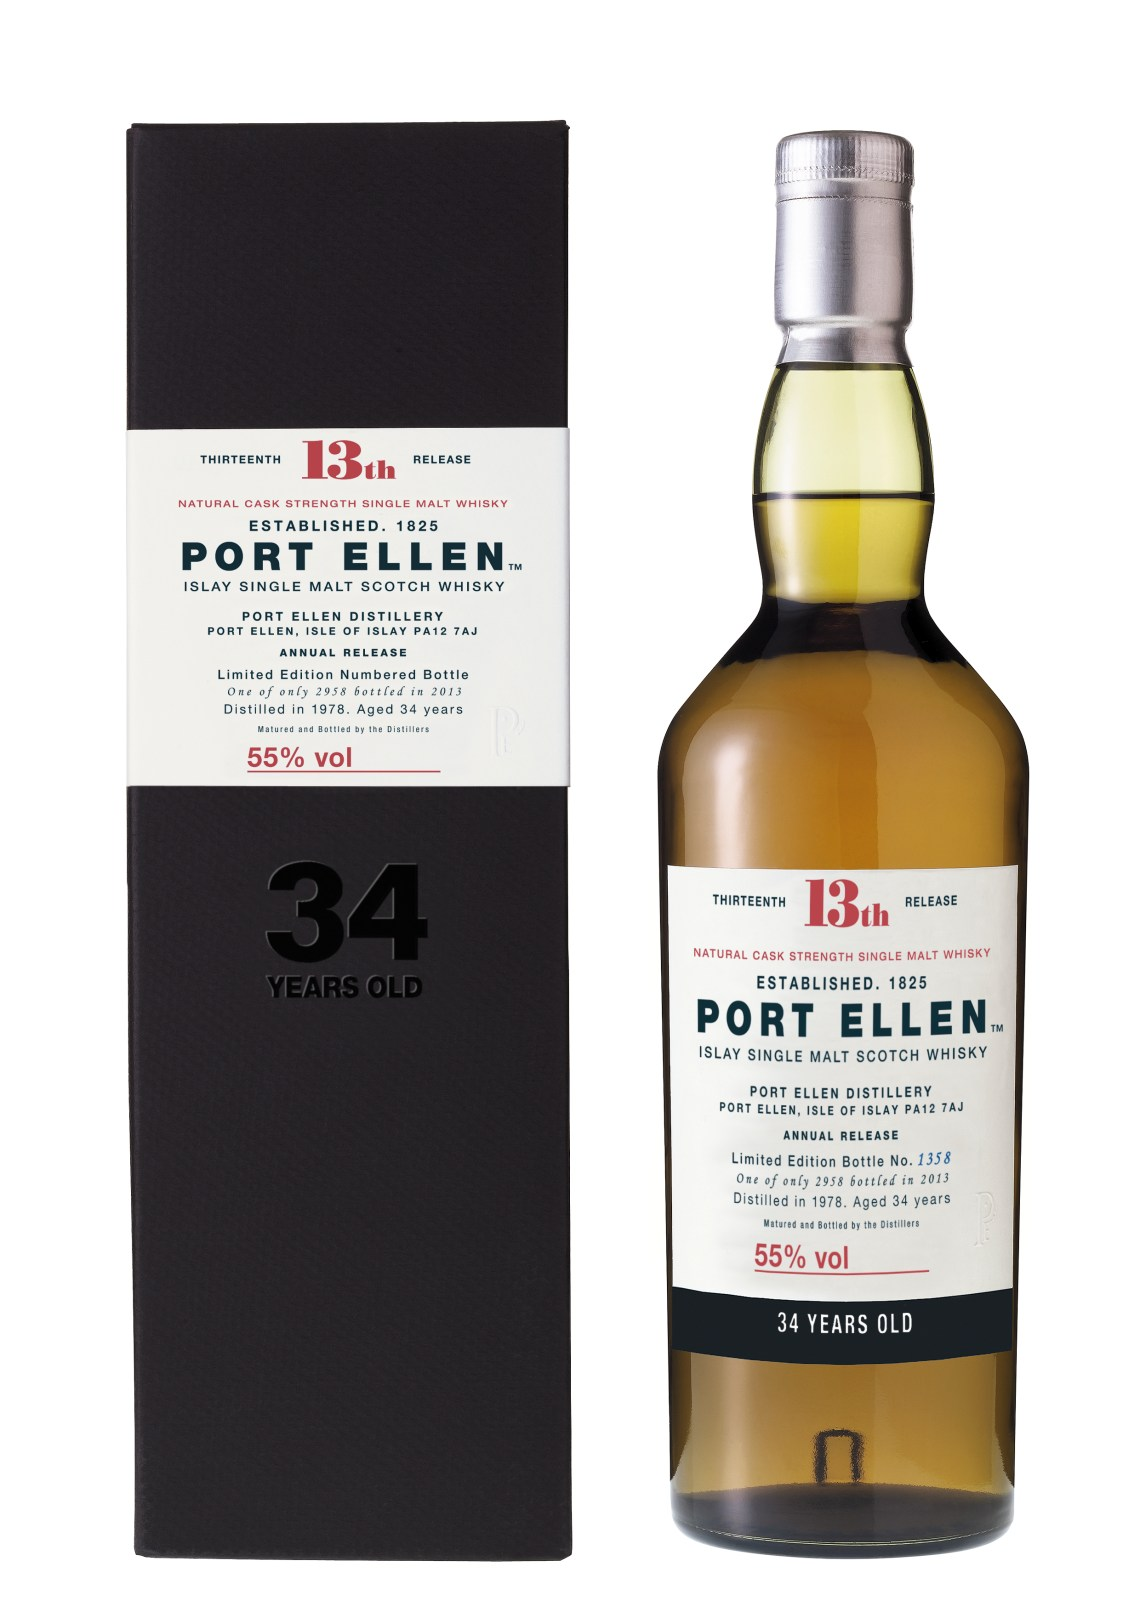 Port Ellen 34 Years Old Limited Edition 2013